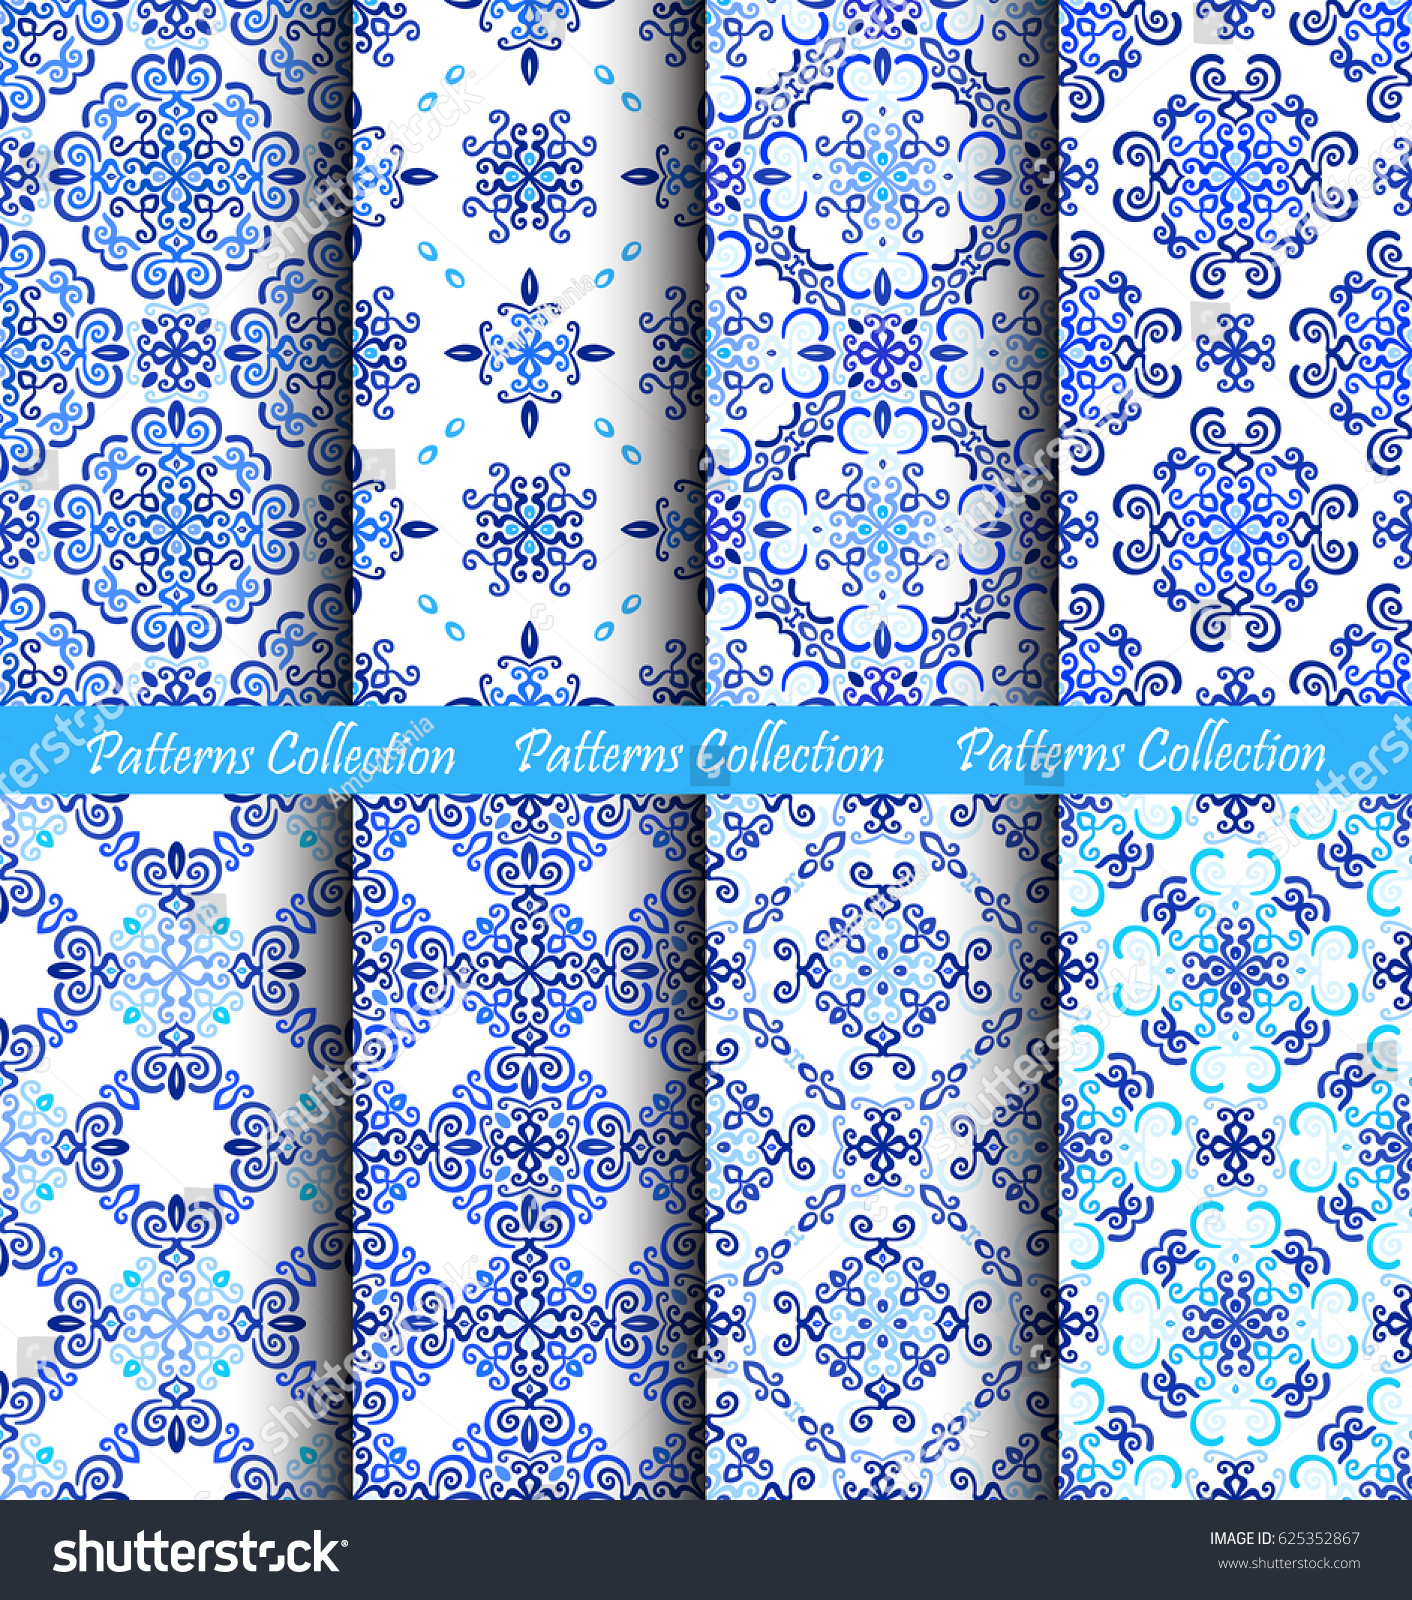 Abstract Flower Background With Decoration Elements For: Blue Backgrounds Stylized Floral Fabric Prints Stock